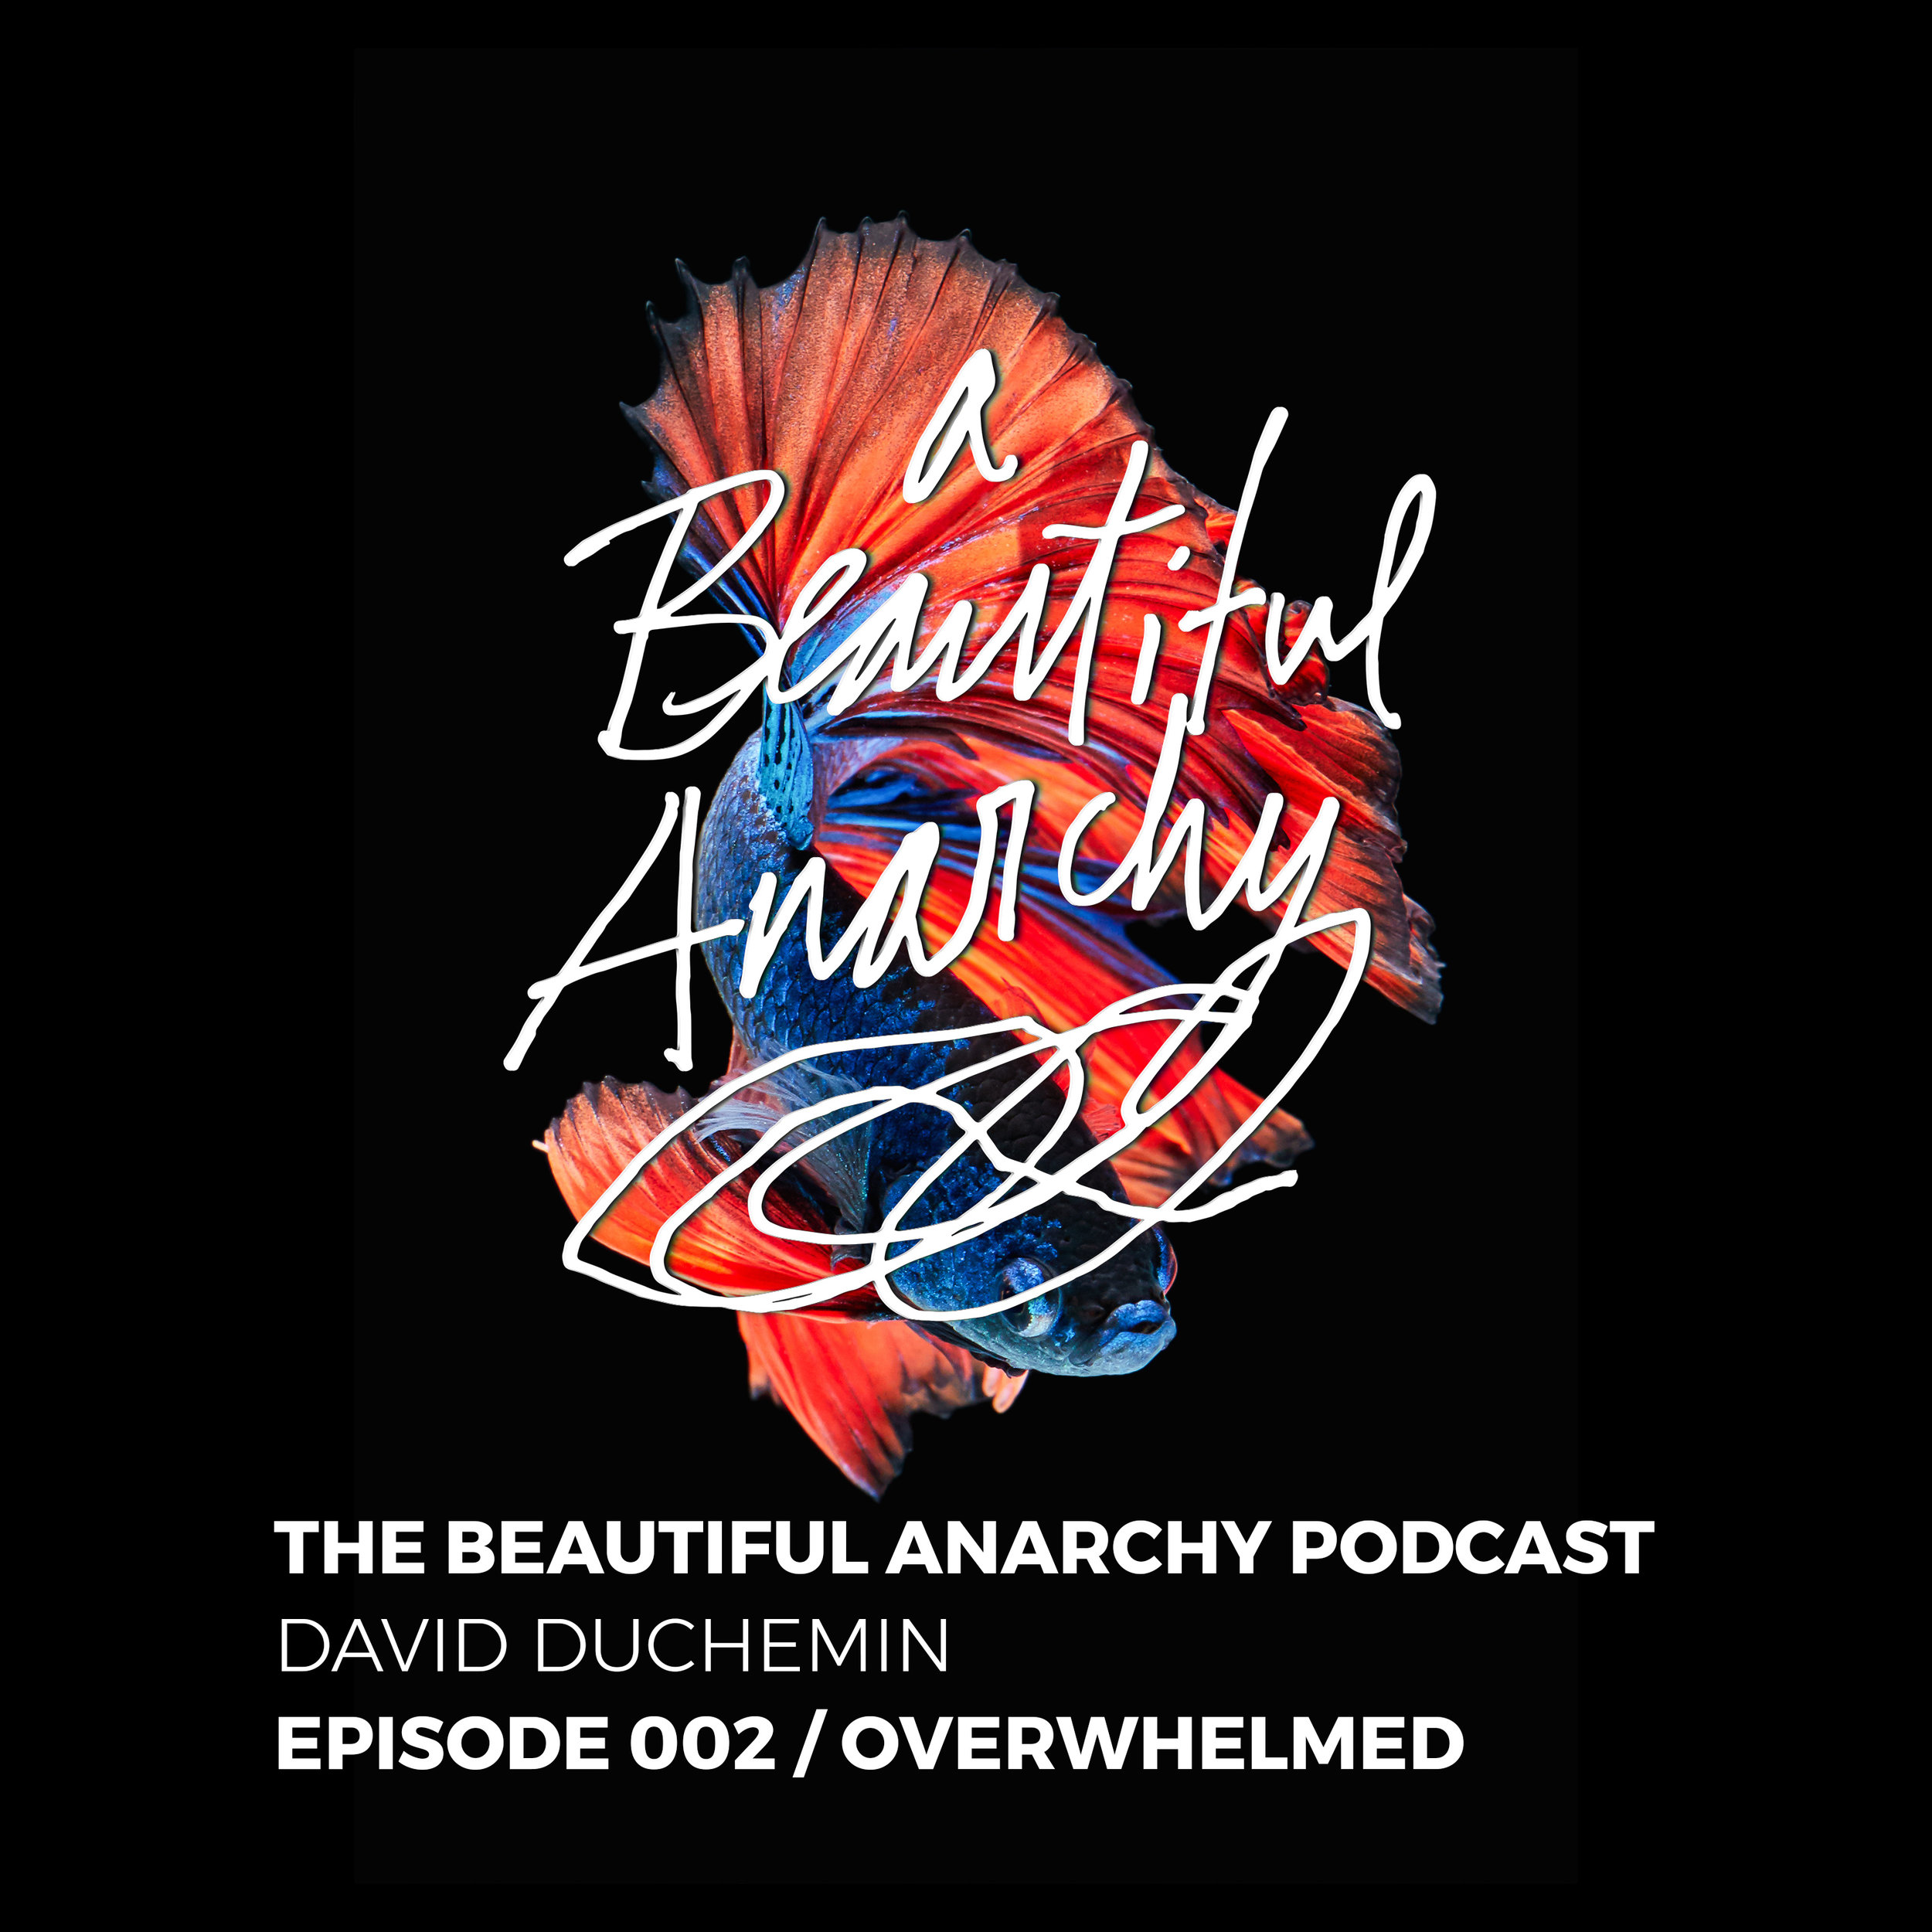 Episode 002:Overwhelmed - I'm feeling overwhelmed these days, like Hokusai's Great Wave keeps hanging above me, threatening to swallow me whole. This episode explores the feelings of being overwhelmed that can paralyze us, and suggests some of my own solutions for dialing it all back, and turning the flood into flow. Let's talk about it.